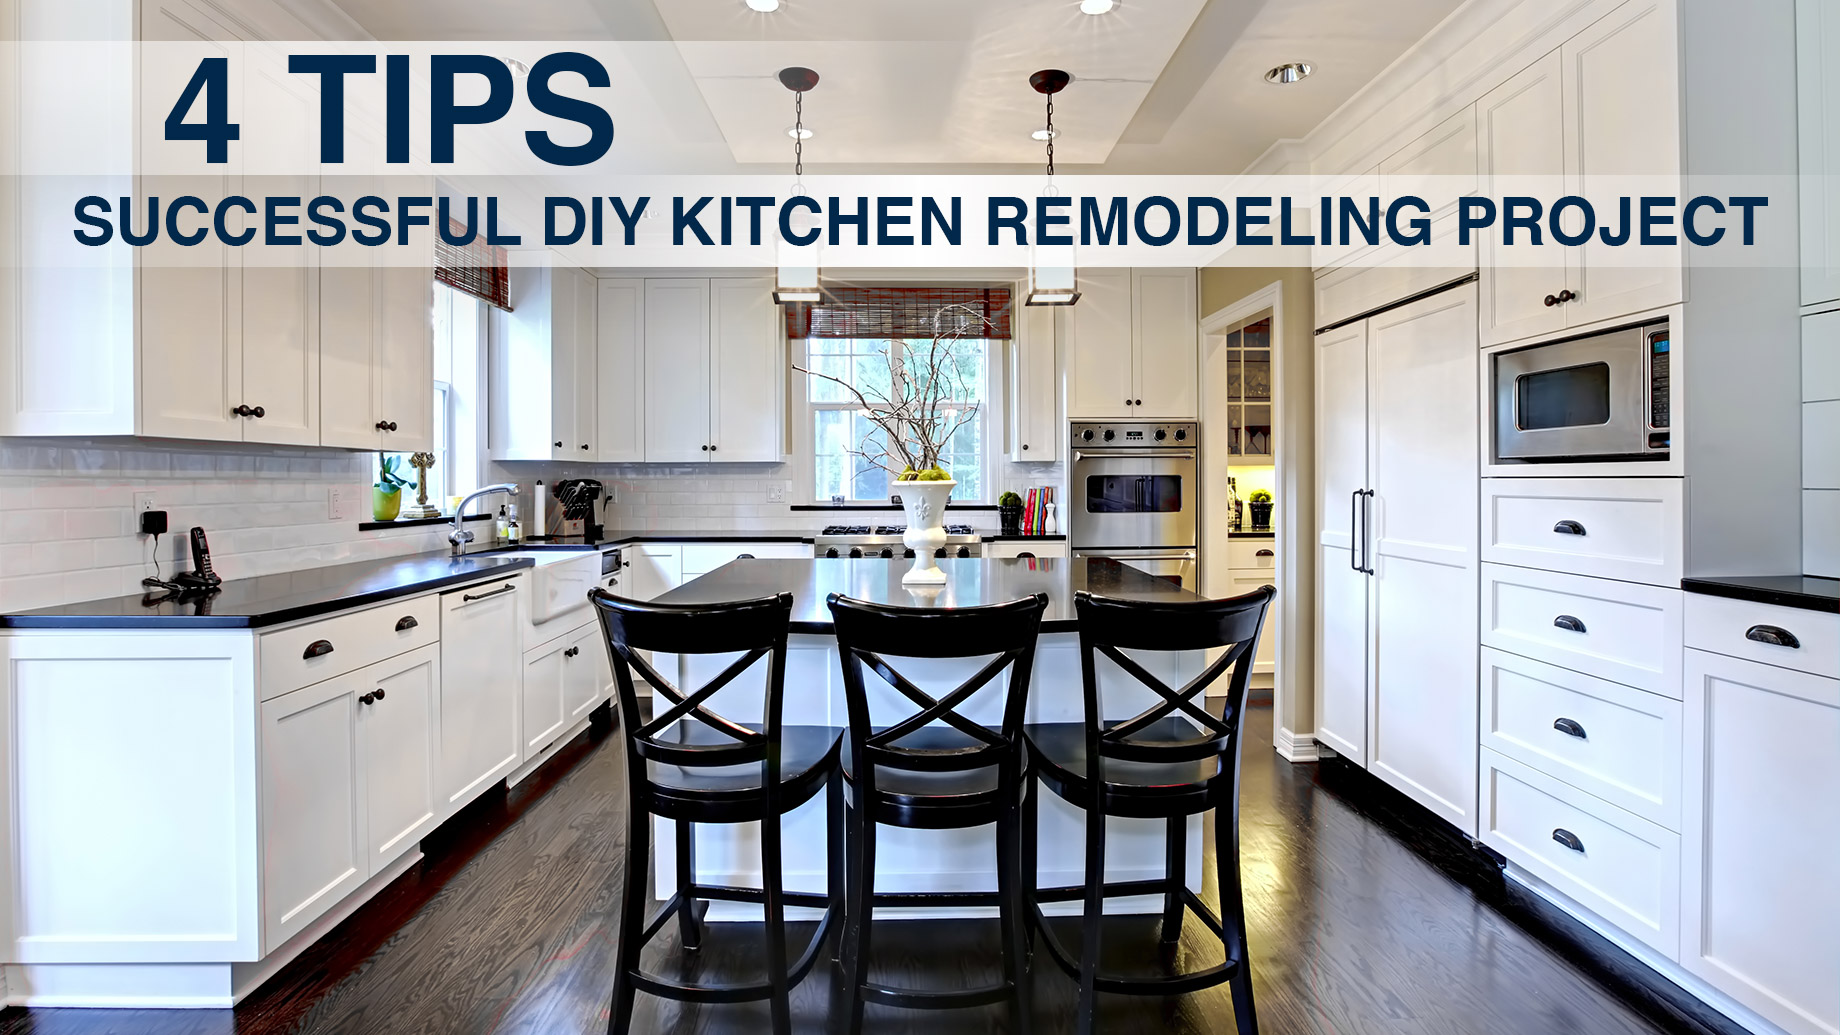 4 Tips for a Successful DIY Kitchen Remodeling Project